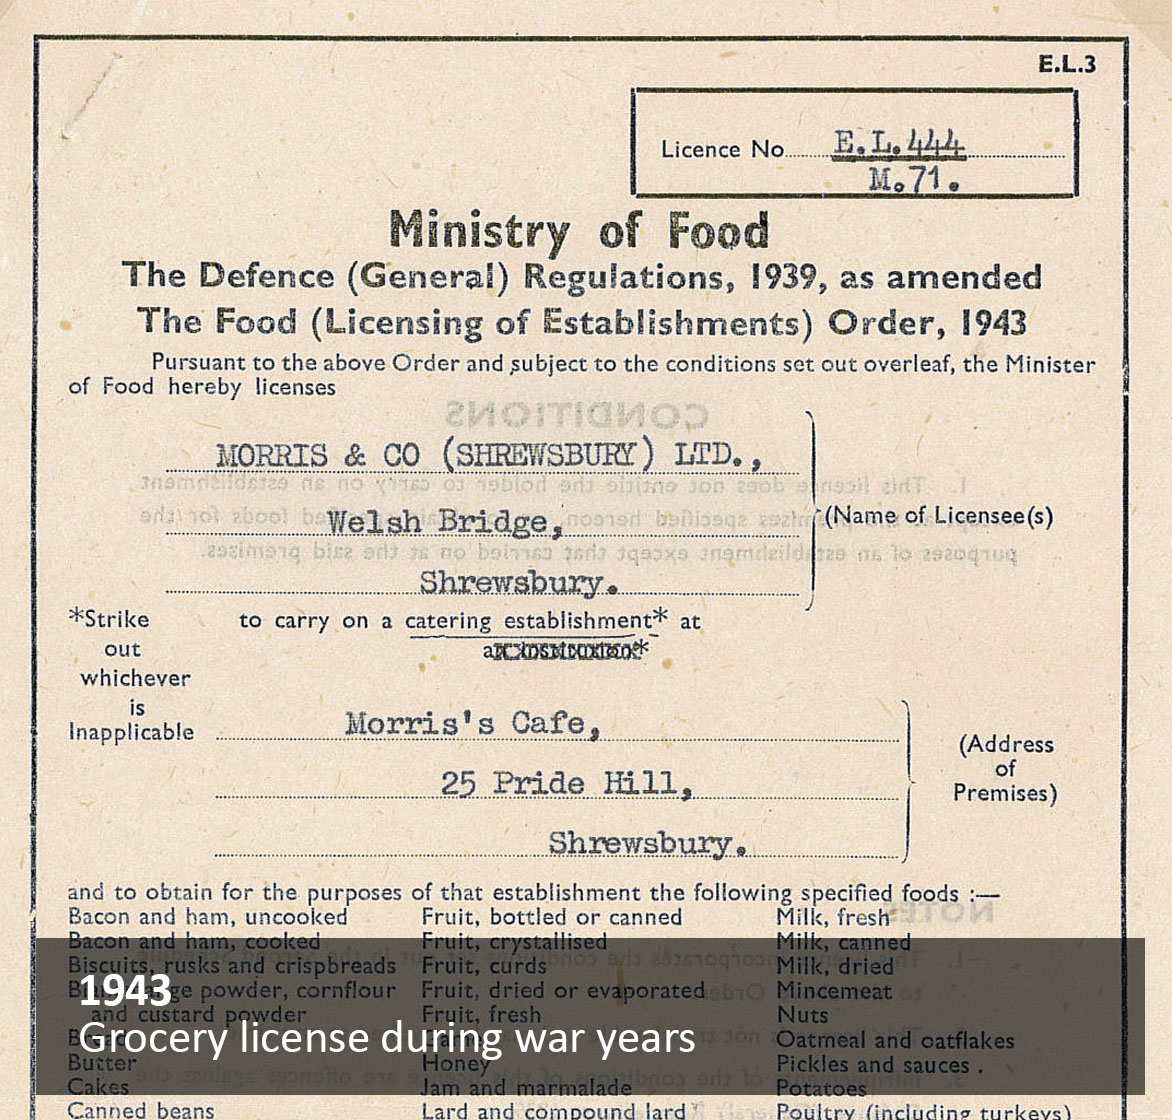 Grocery License during war years